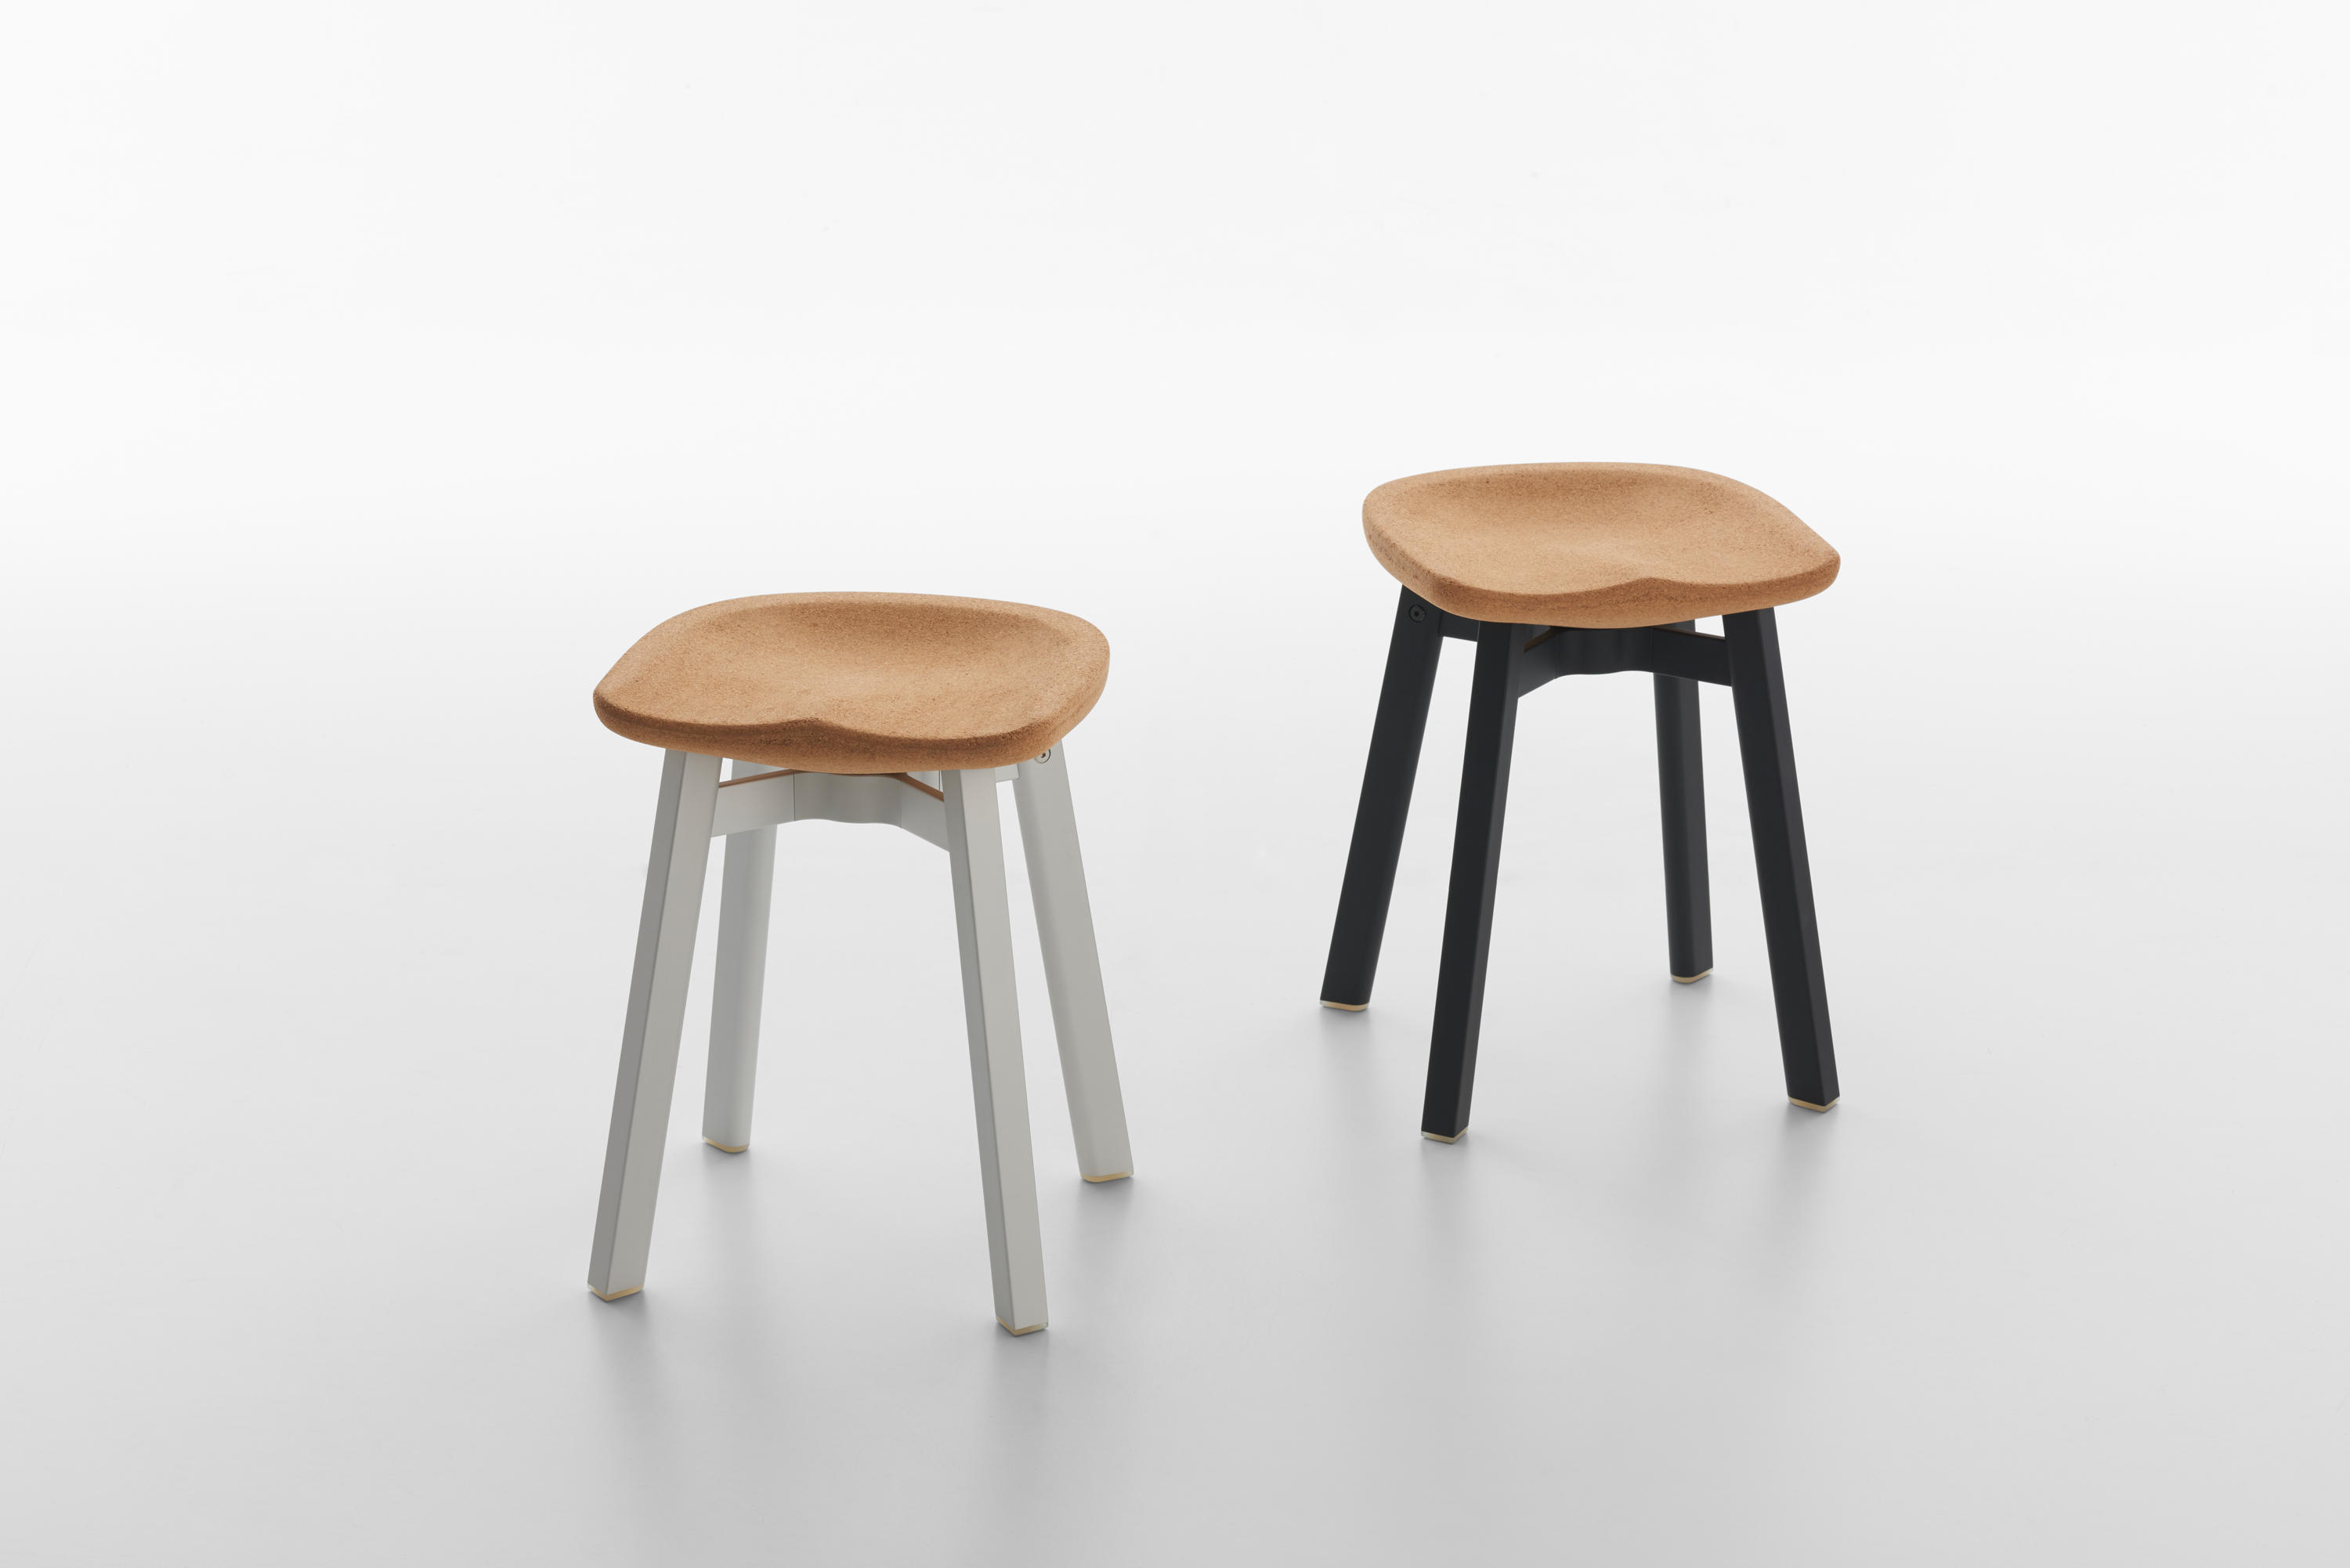 Broom chair for emeco in 2012 to showcase the properties of a new wood -  Emeco Su Small Stool By Emeco